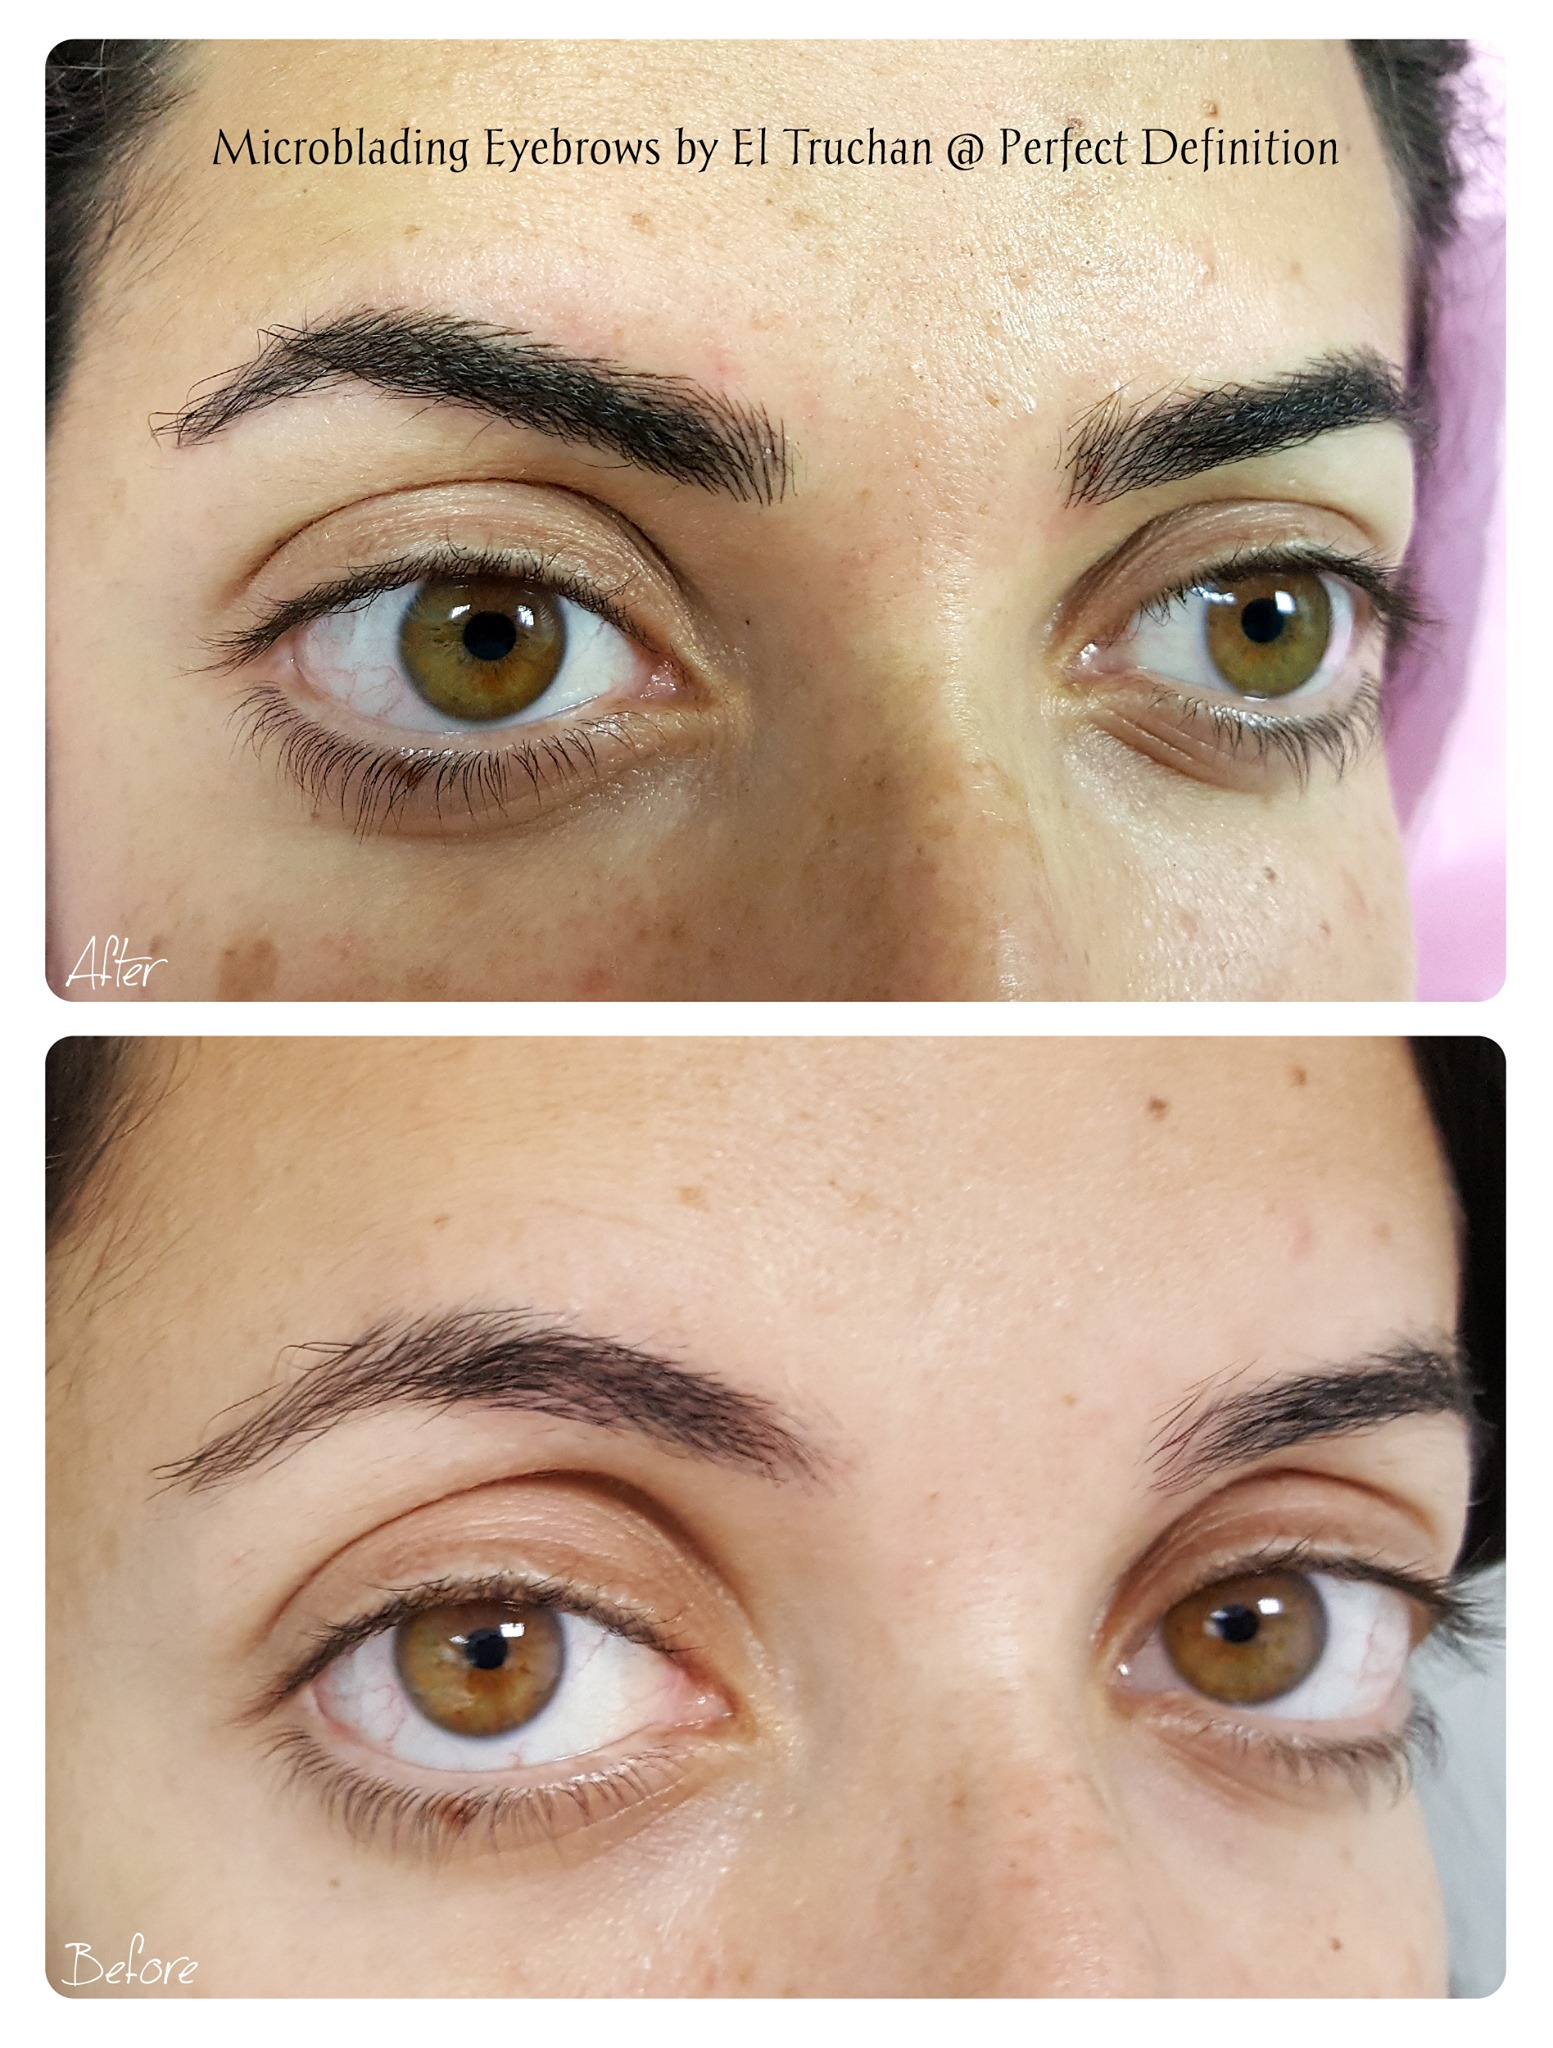 Microblading Eyebrows by El Truchan @ Pe